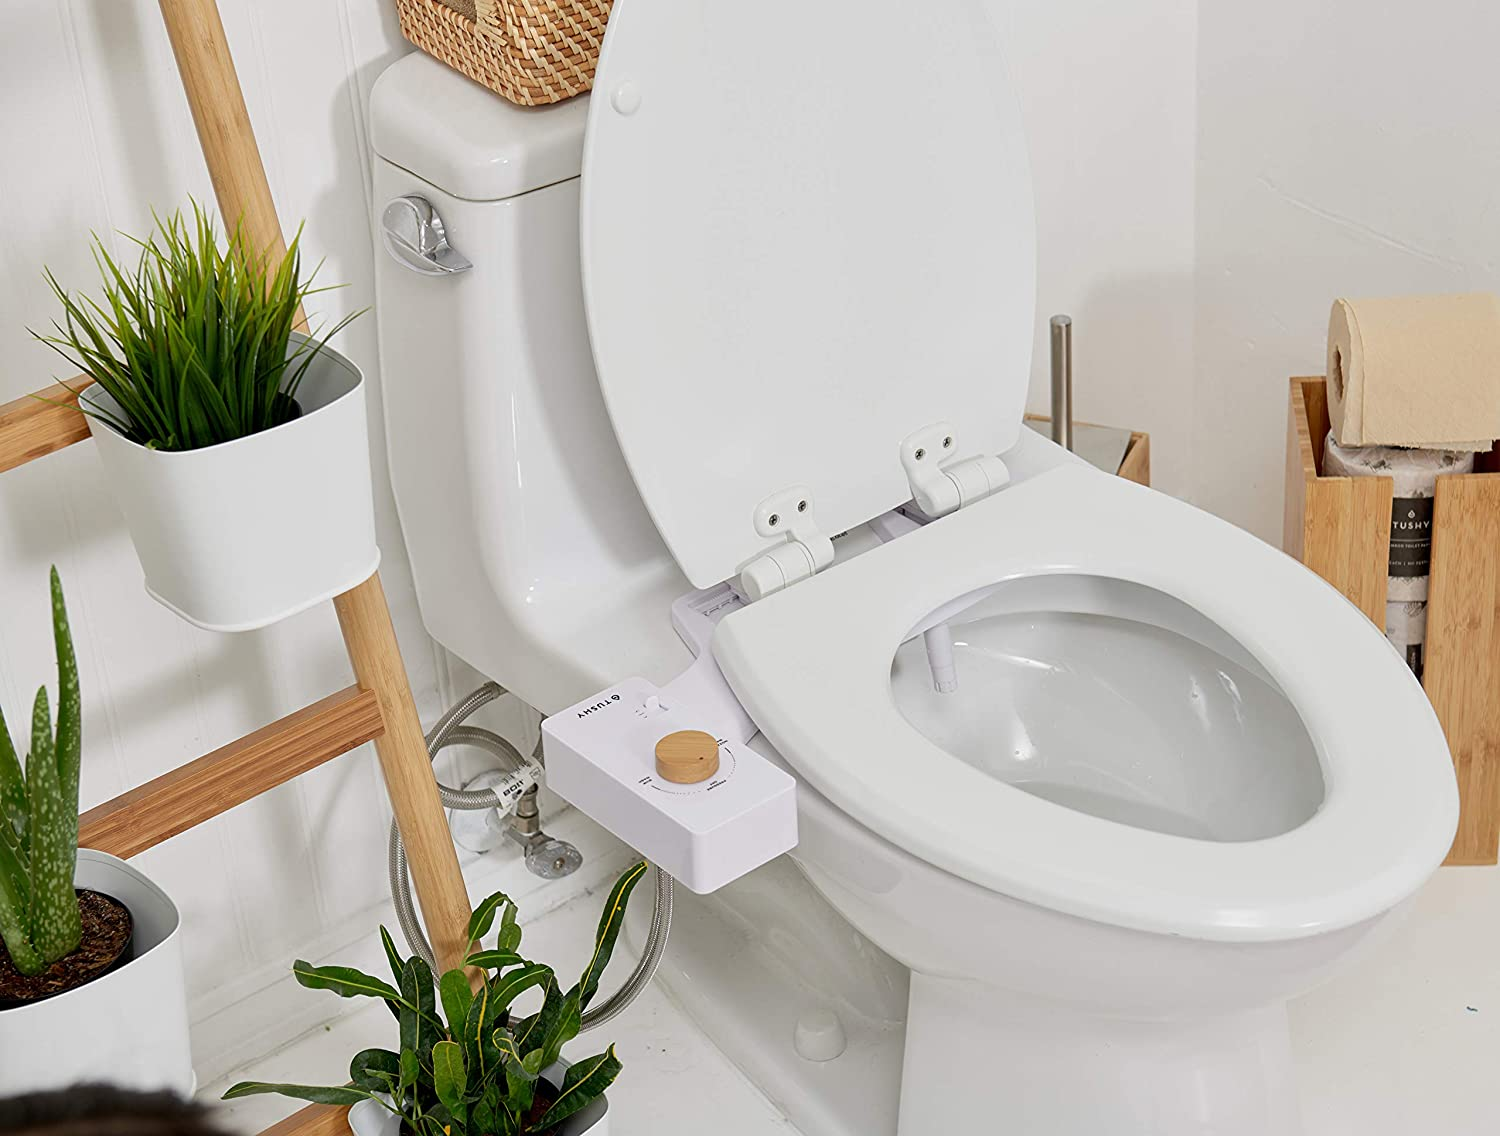 TUSHY Classic Bidet Toilet Attachment – Modern Sleek Design – Fresh Clean Water Sprayer – Non-Electric Self Cleaning Nozzle, $89 @amazon.com